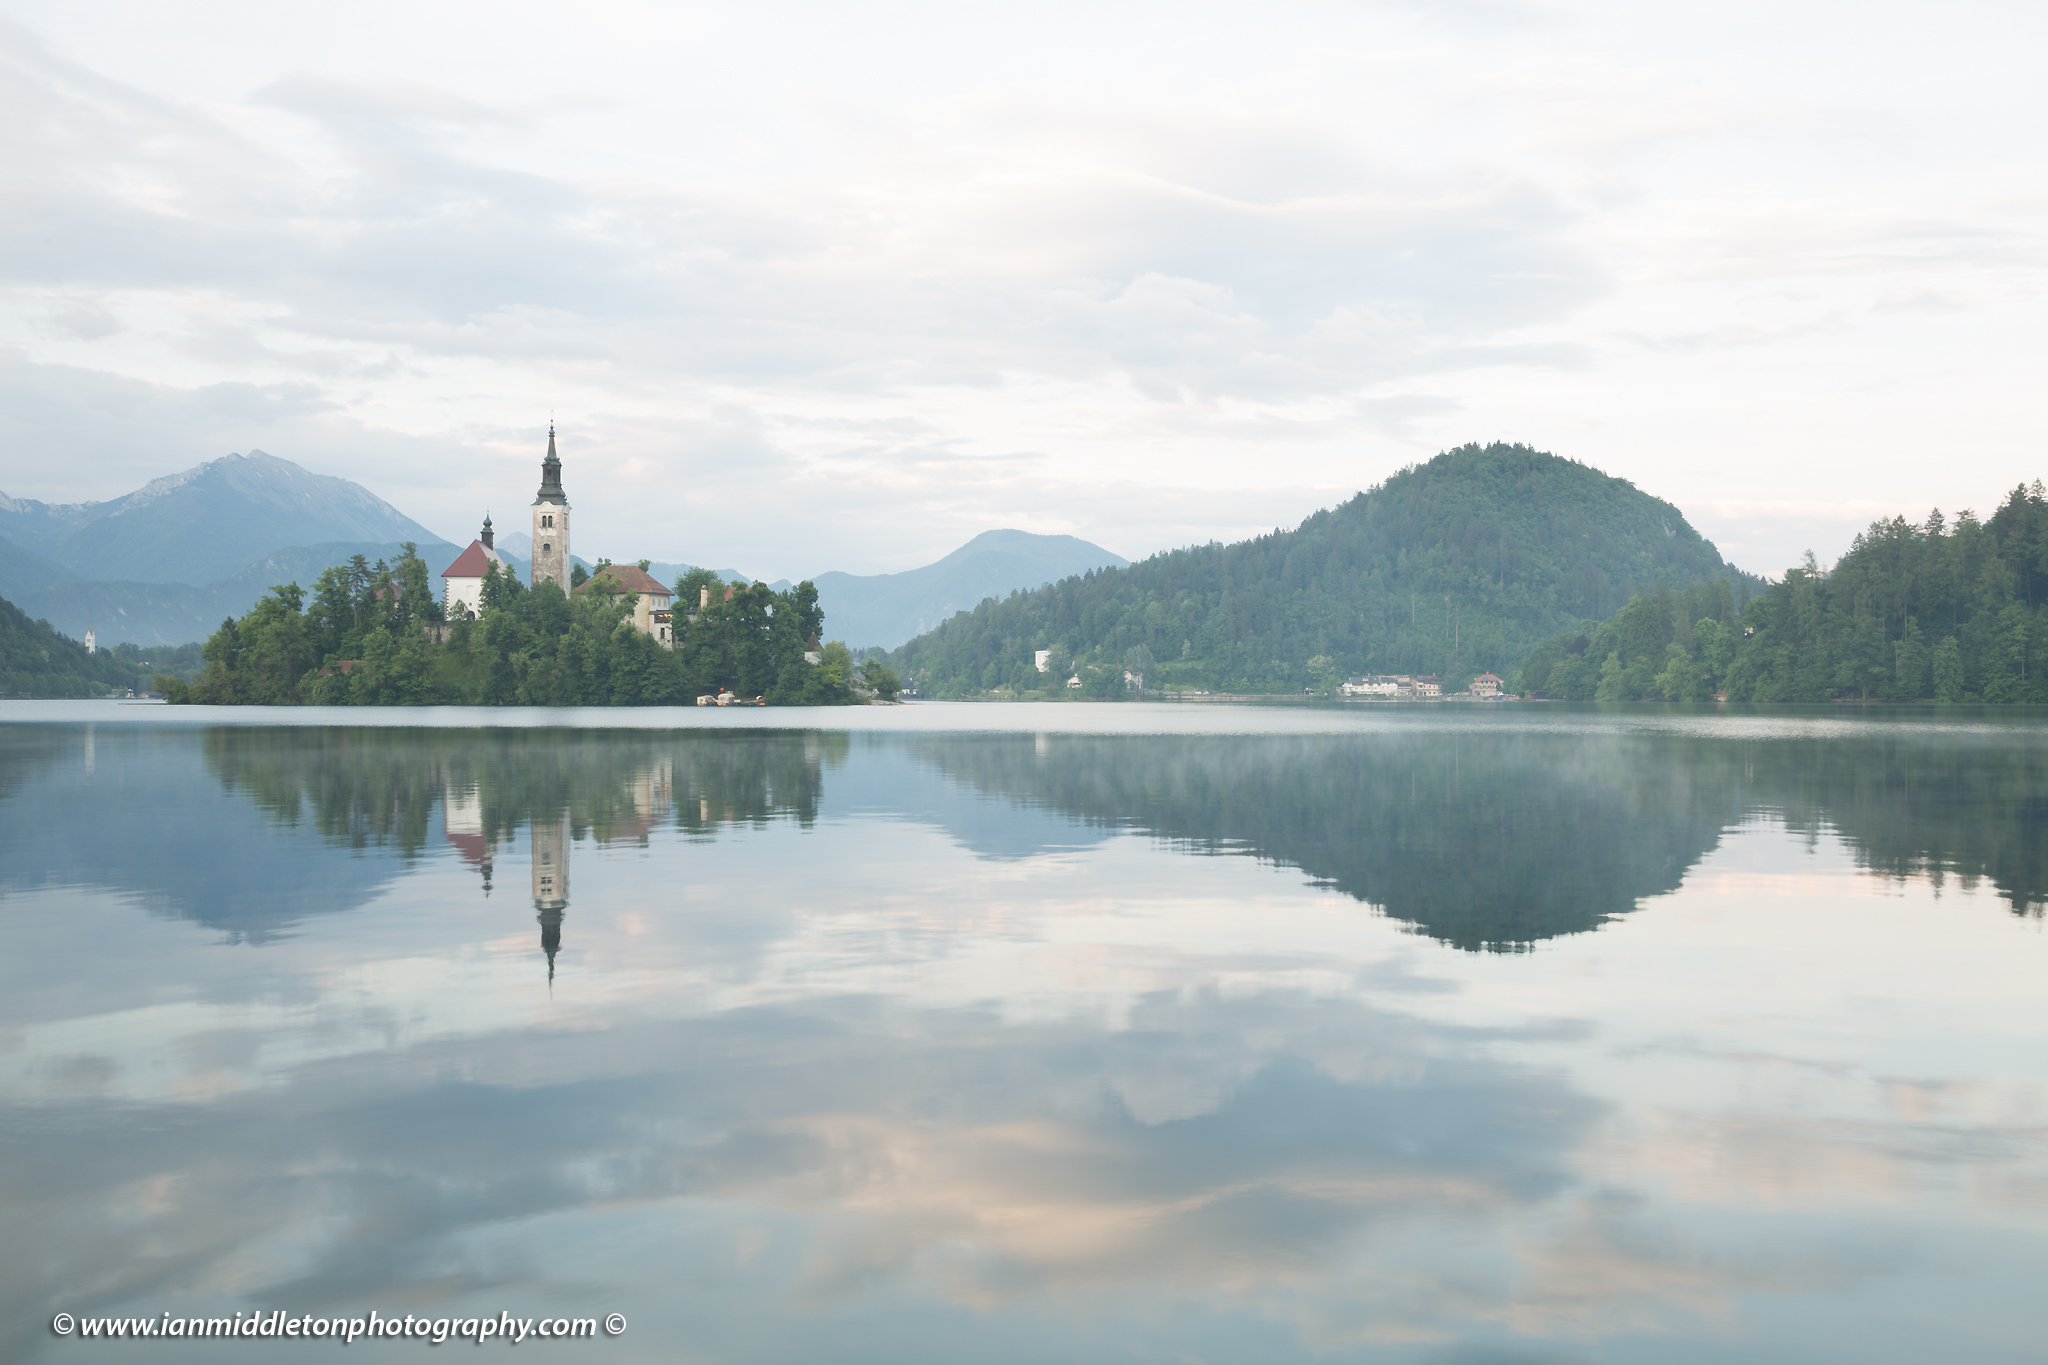 This image is exposed to the right. View across the beautiful Lake Bled, island church at sunset with the beautiful Karavank mountains in the background, Slovenia. Image has been deliberately overexposed in order to demonstrate the technique known as exposing to the right